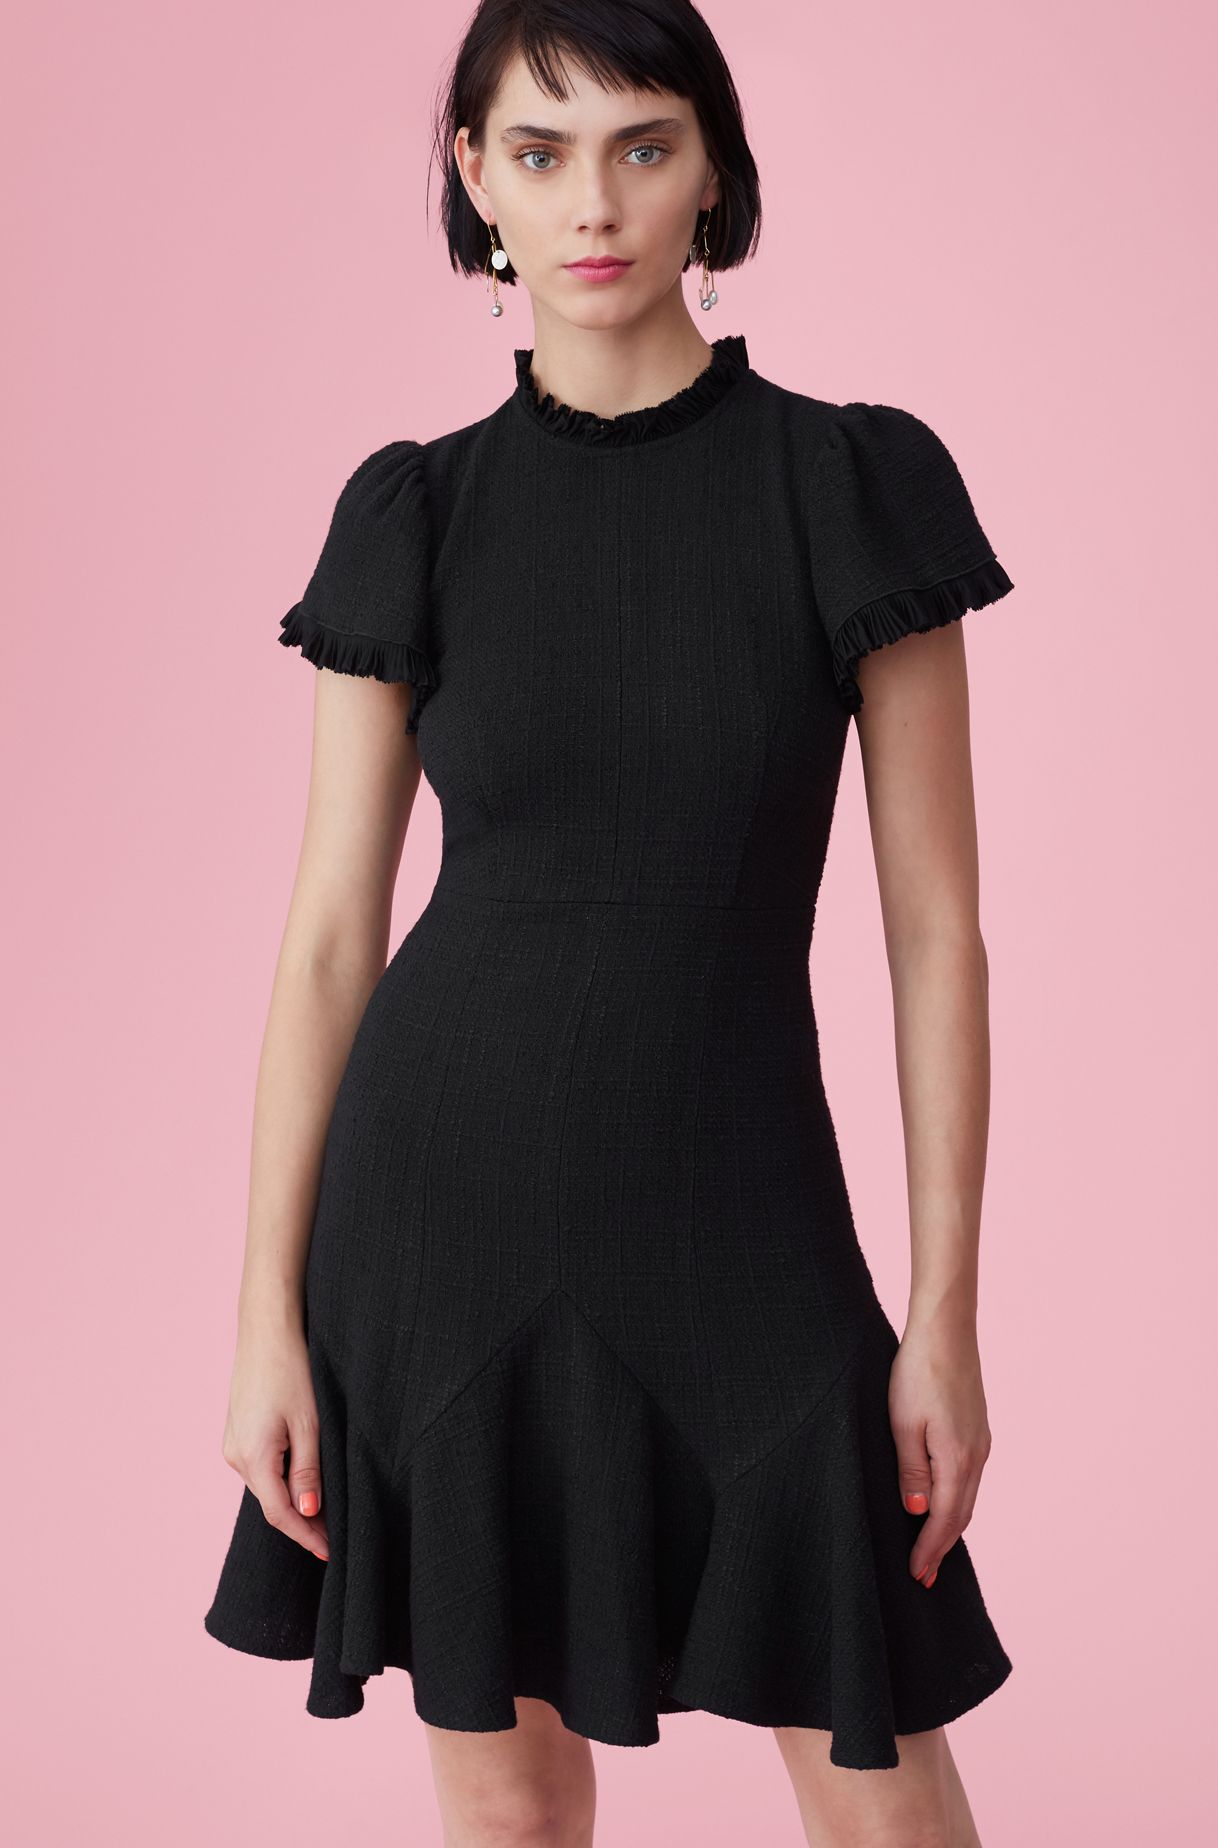 d96683adbfe7 Our Tweed Dress with Chiffon is a versatile, short-sleeve little black dress .